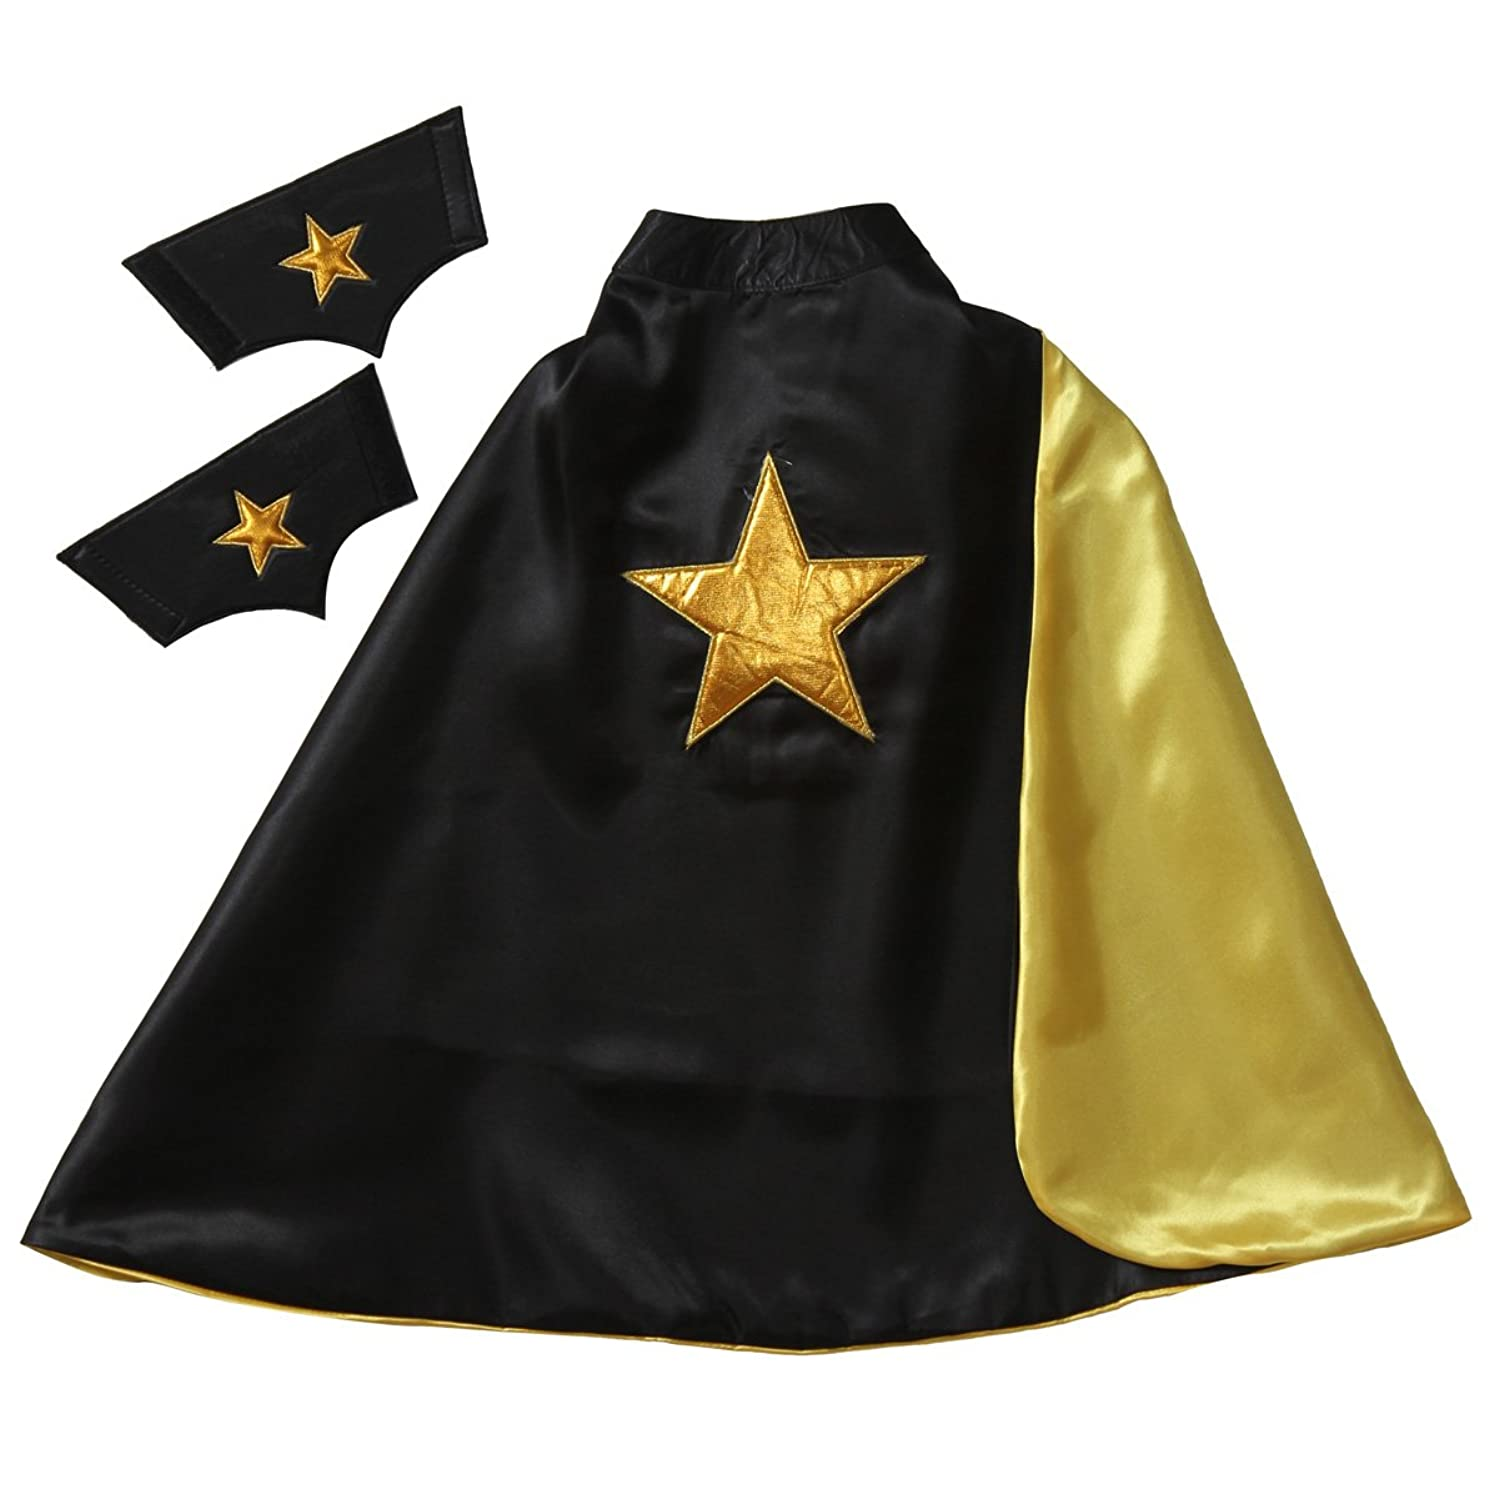 Amazon.com Making Believe Reversible Black u0026 Gold 24  Star Cape u0026 Cuffs Toys u0026 Games  sc 1 st  Amazon.com & Amazon.com: Making Believe Reversible Black u0026 Gold 24